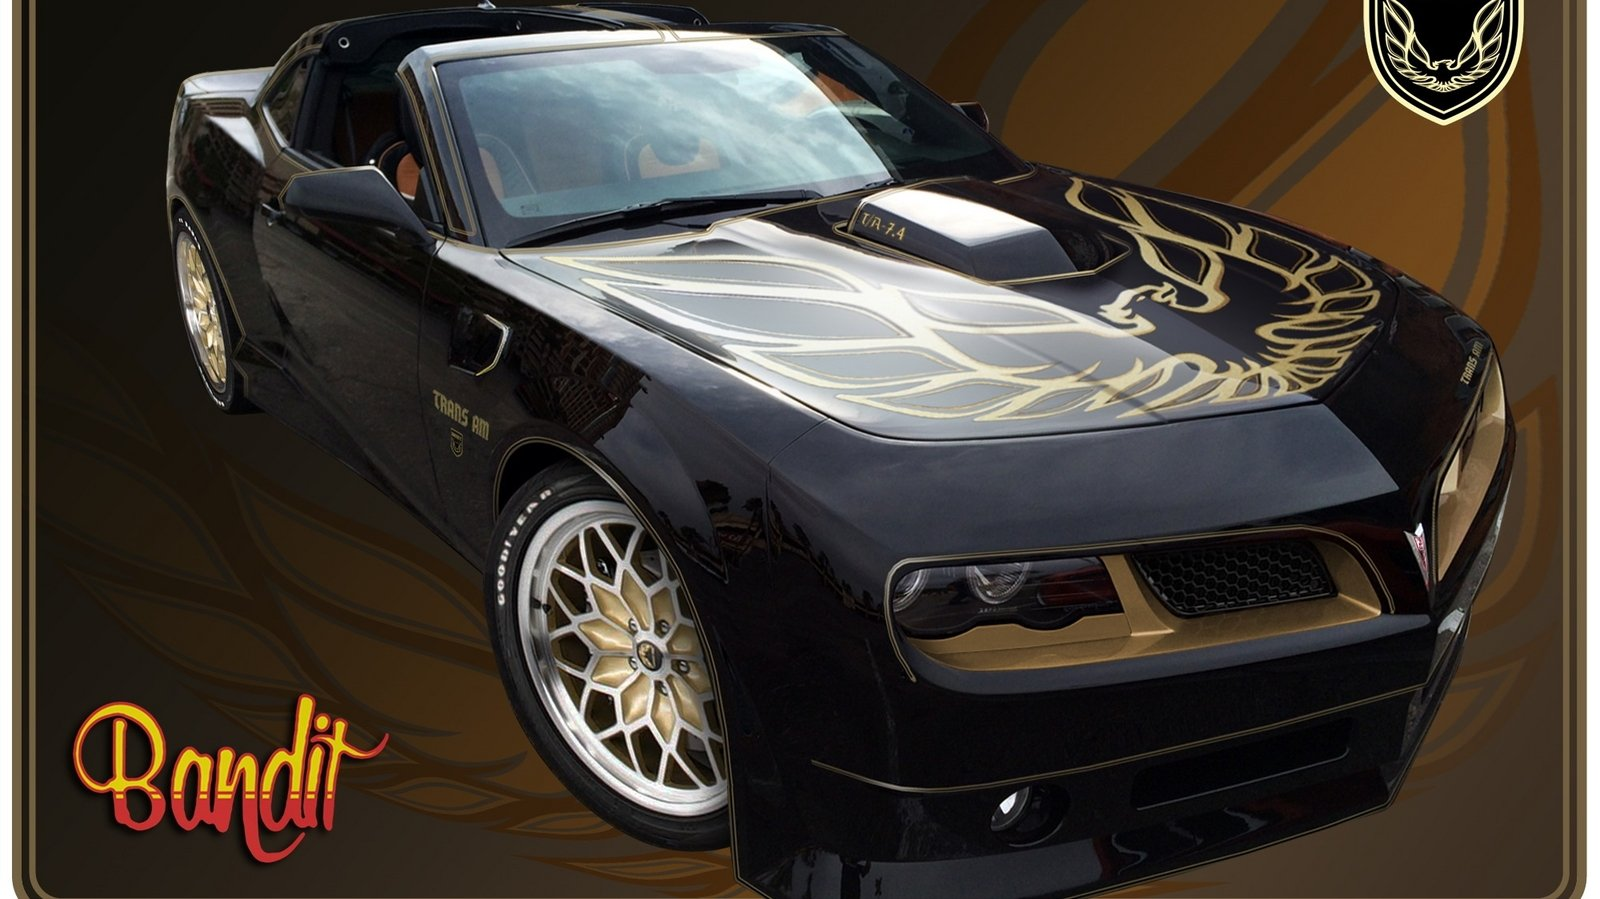 Smokey and the bandit trans am-3865